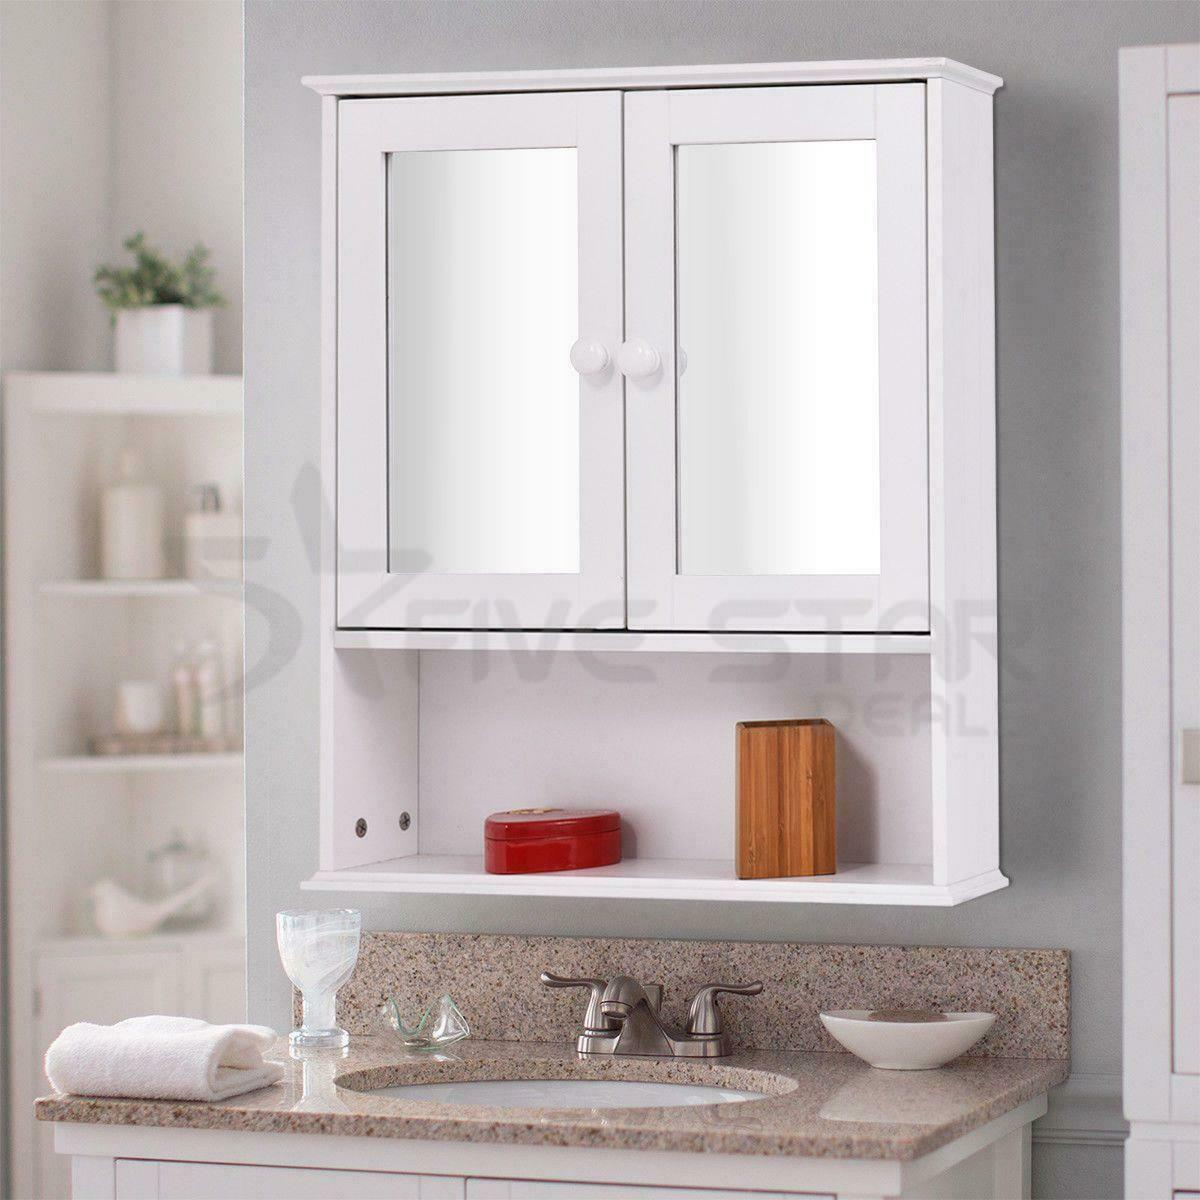 NEW ELEGANT BATHROOM Wall Cabinet Double Mirror Door Wooden Shelf ...